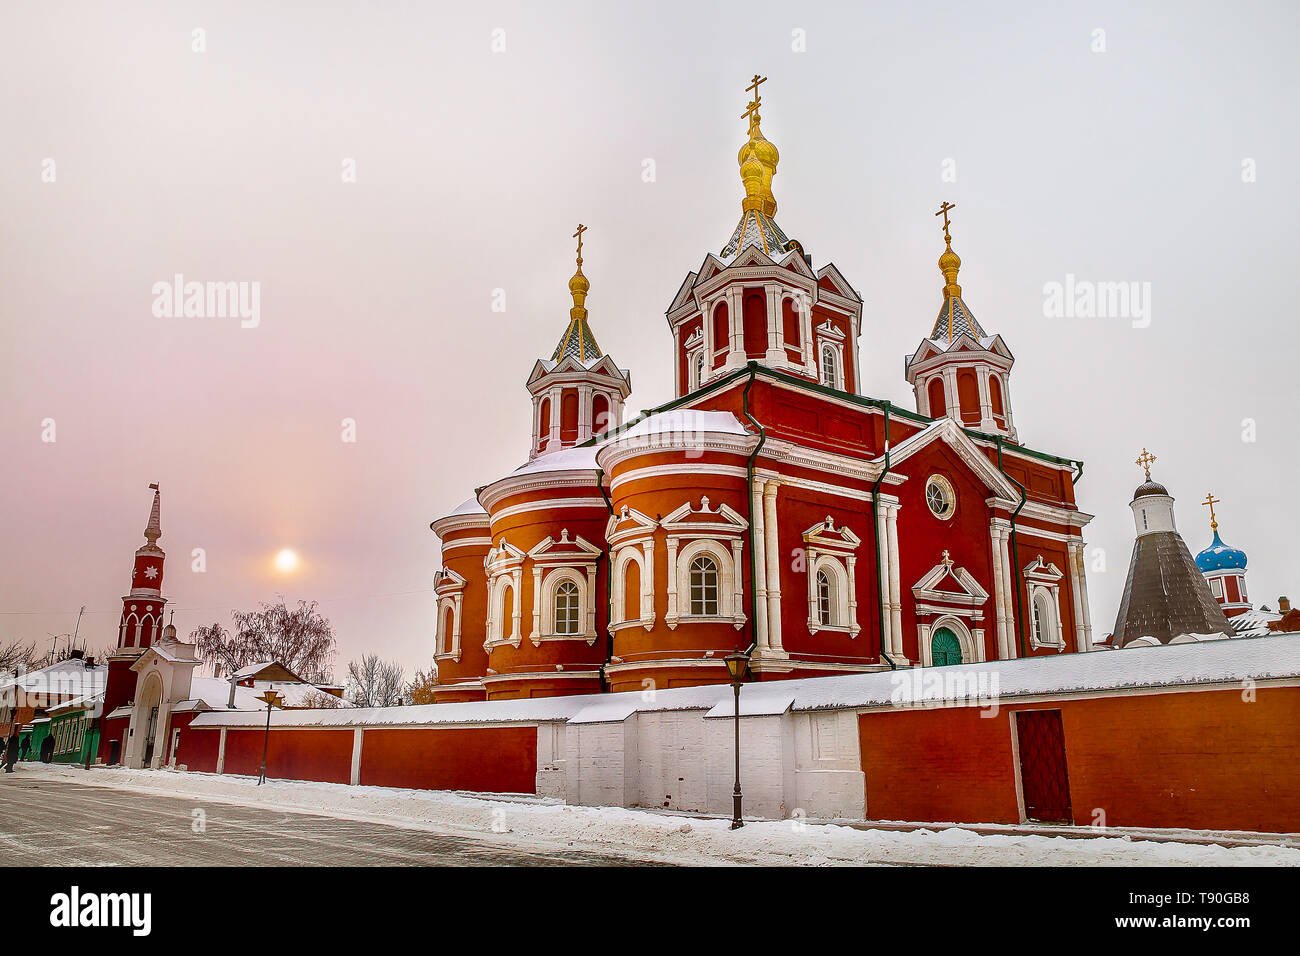 Holy cross Cathedral. Kolomna. Russia. Stock Photo